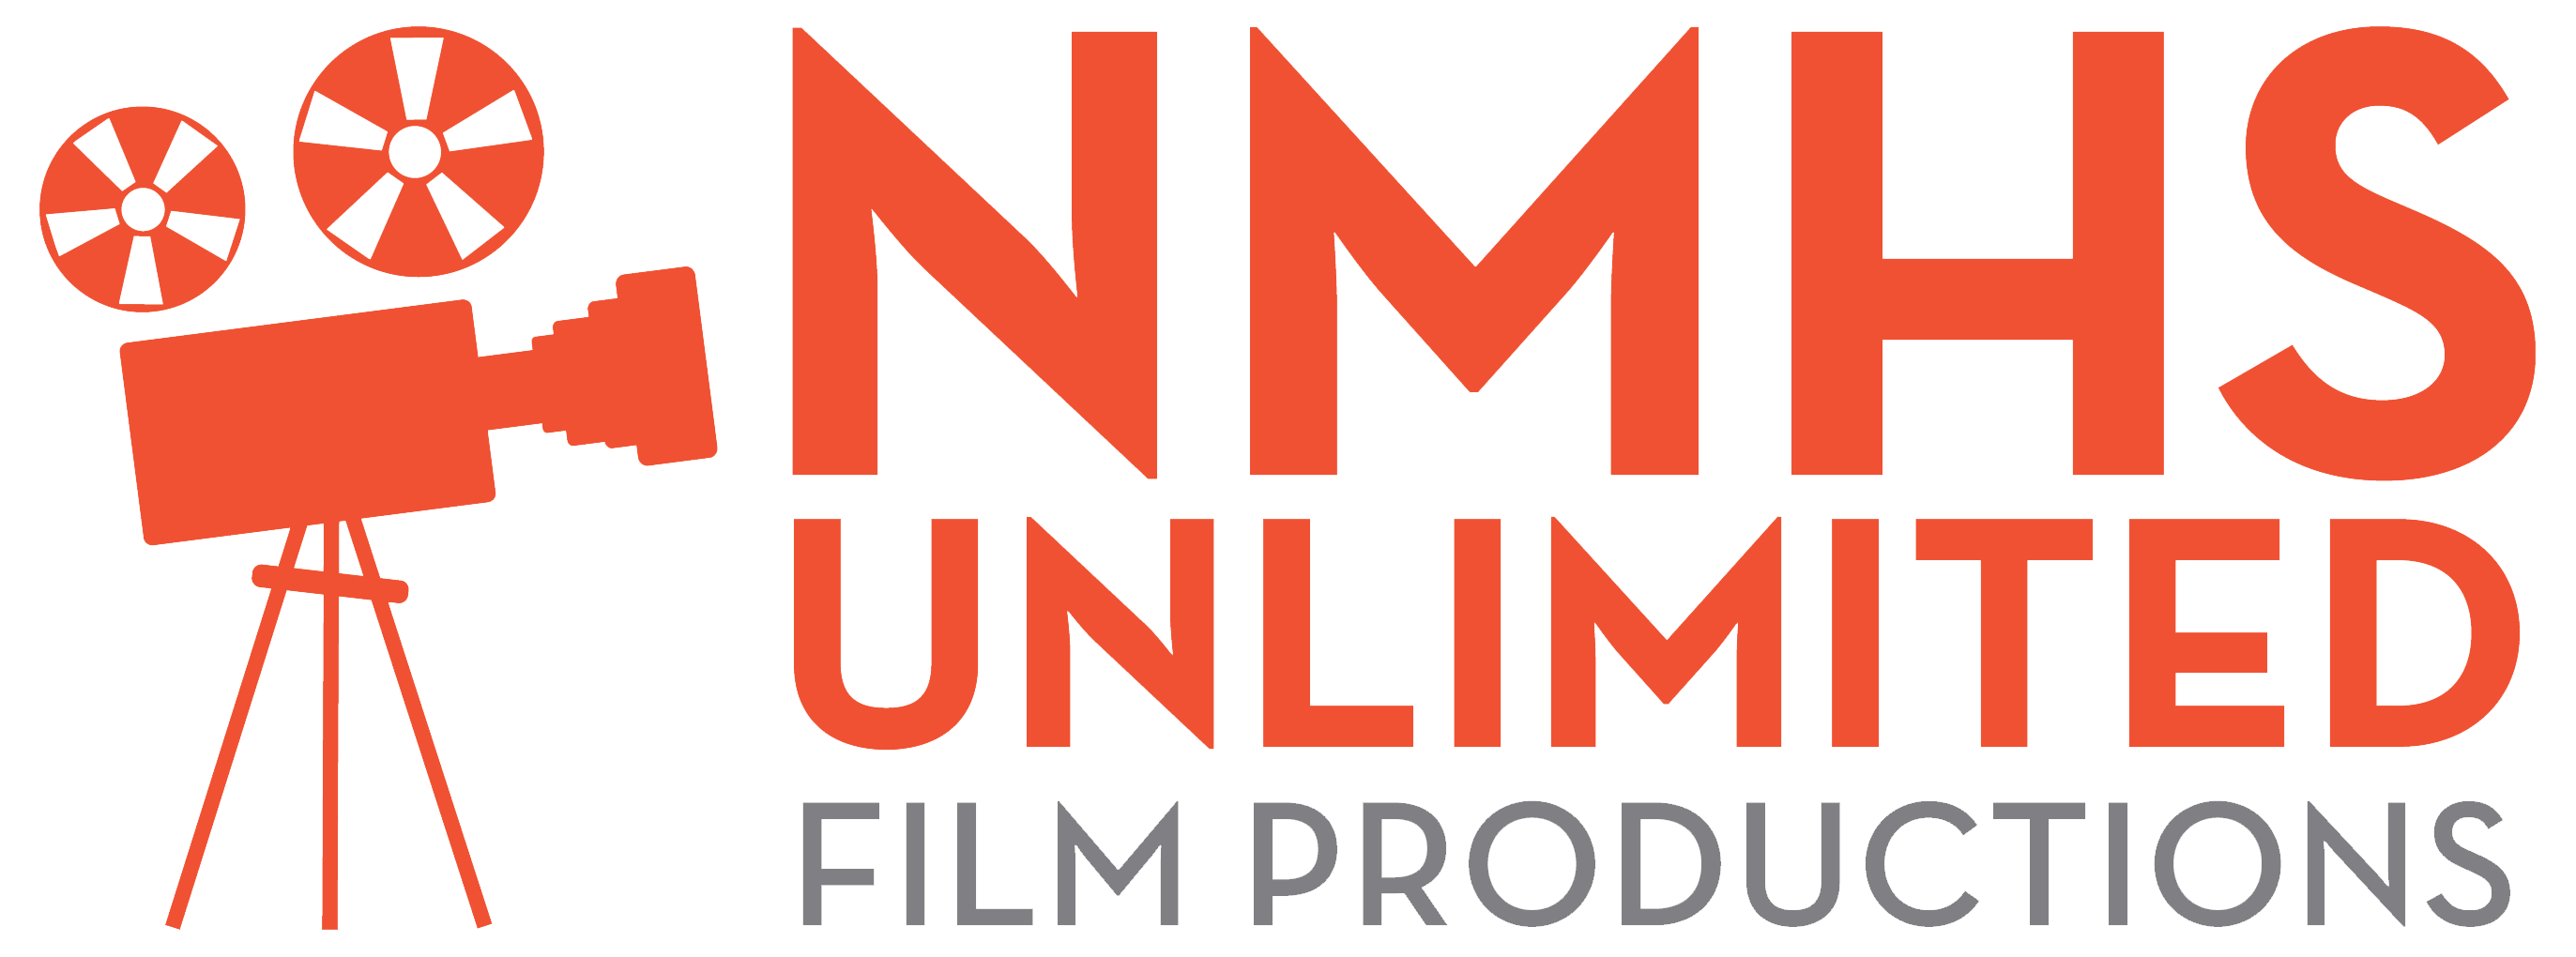 NMHS Unlimited Film Productions